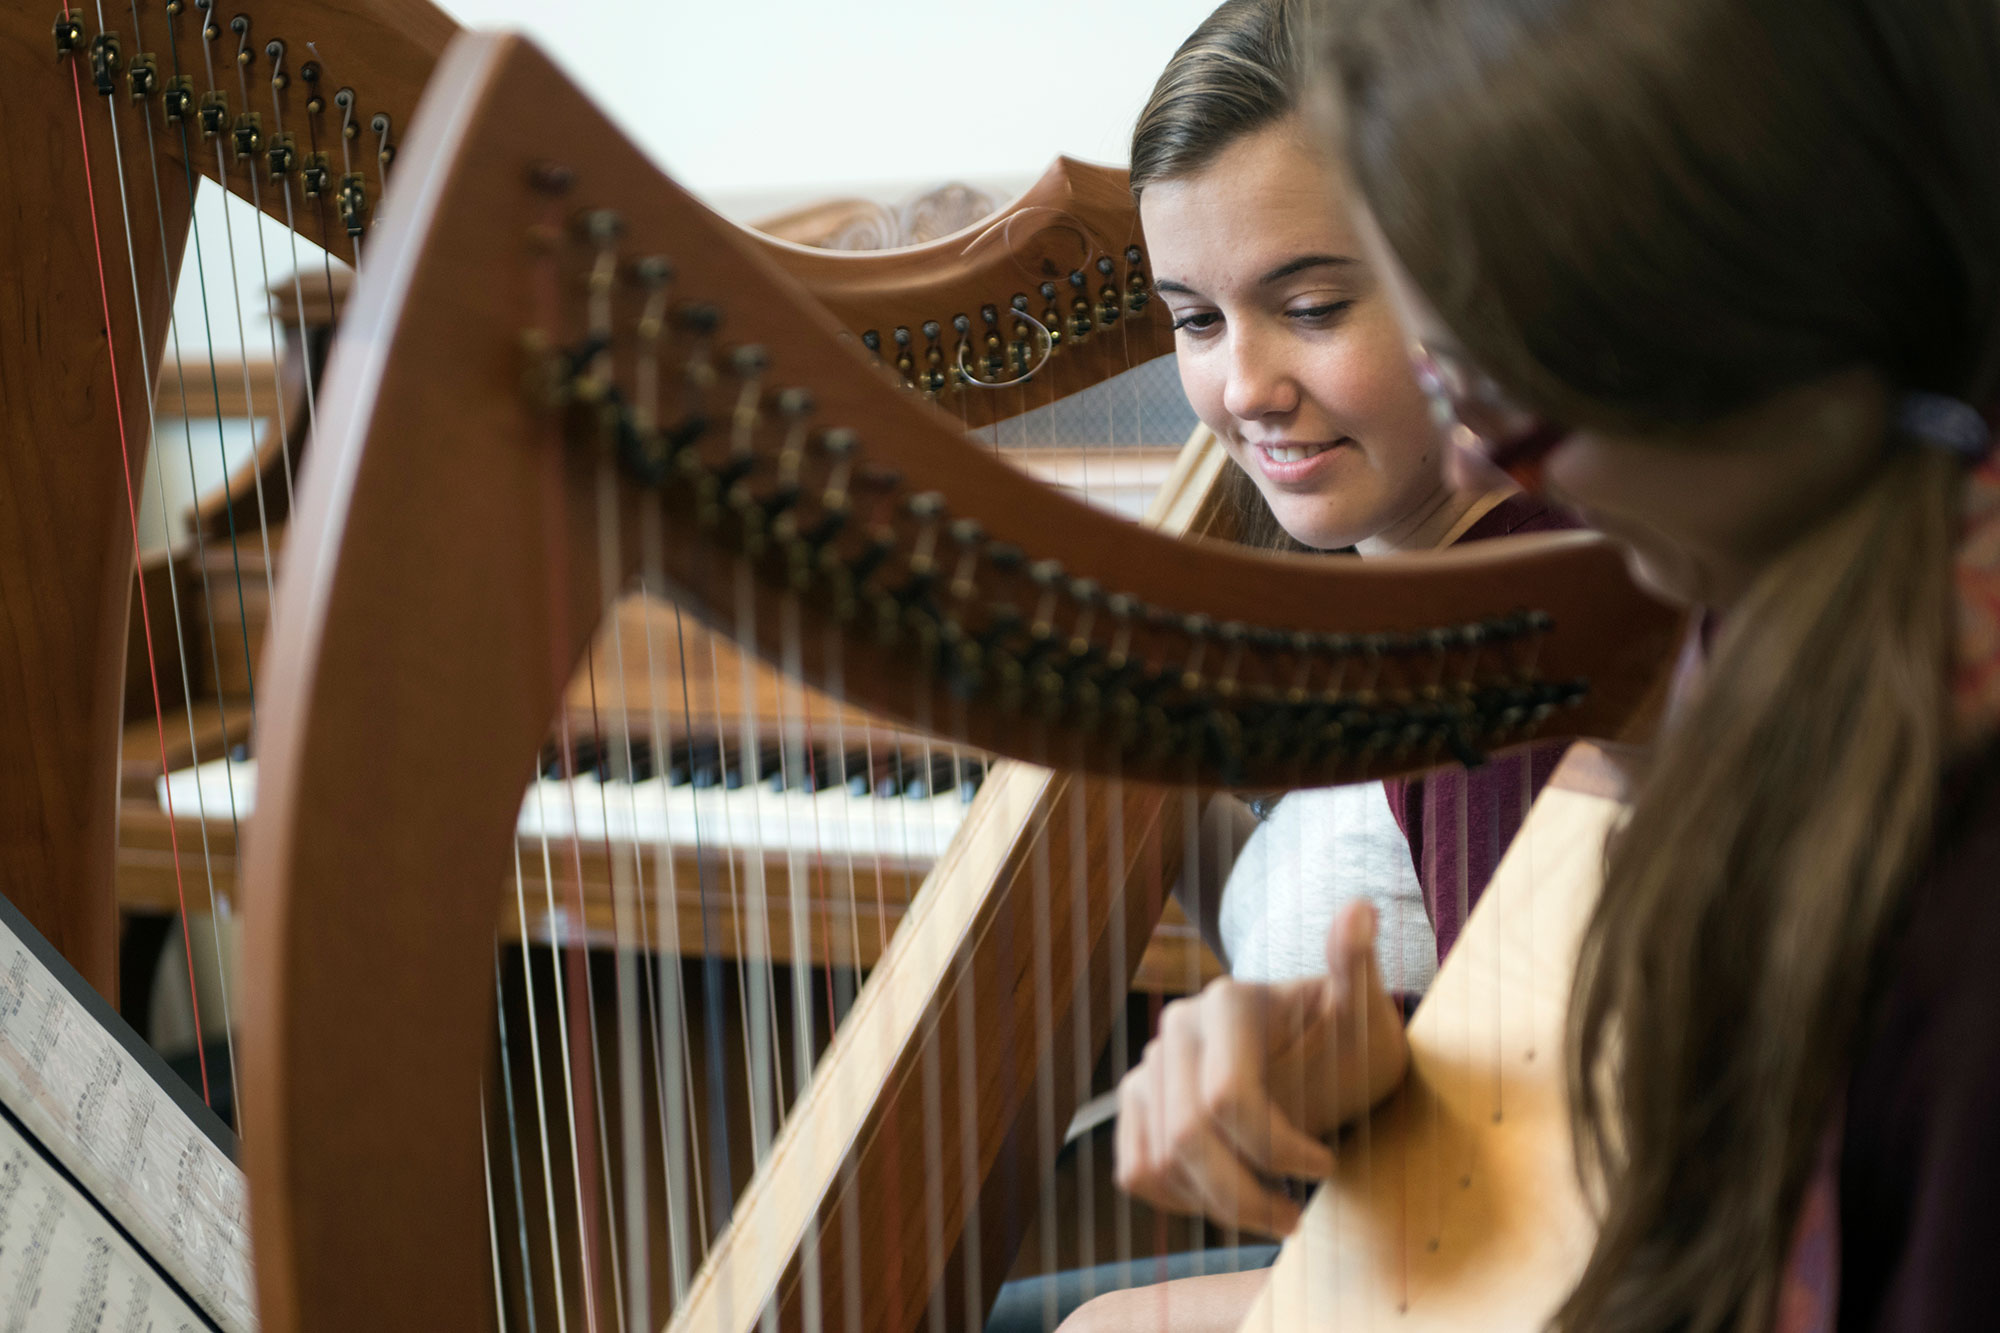 Quincy, MA - Haley teaches private harp lessons Mondays, Thursdays, and Fridays at her home studio in Quincy MA.